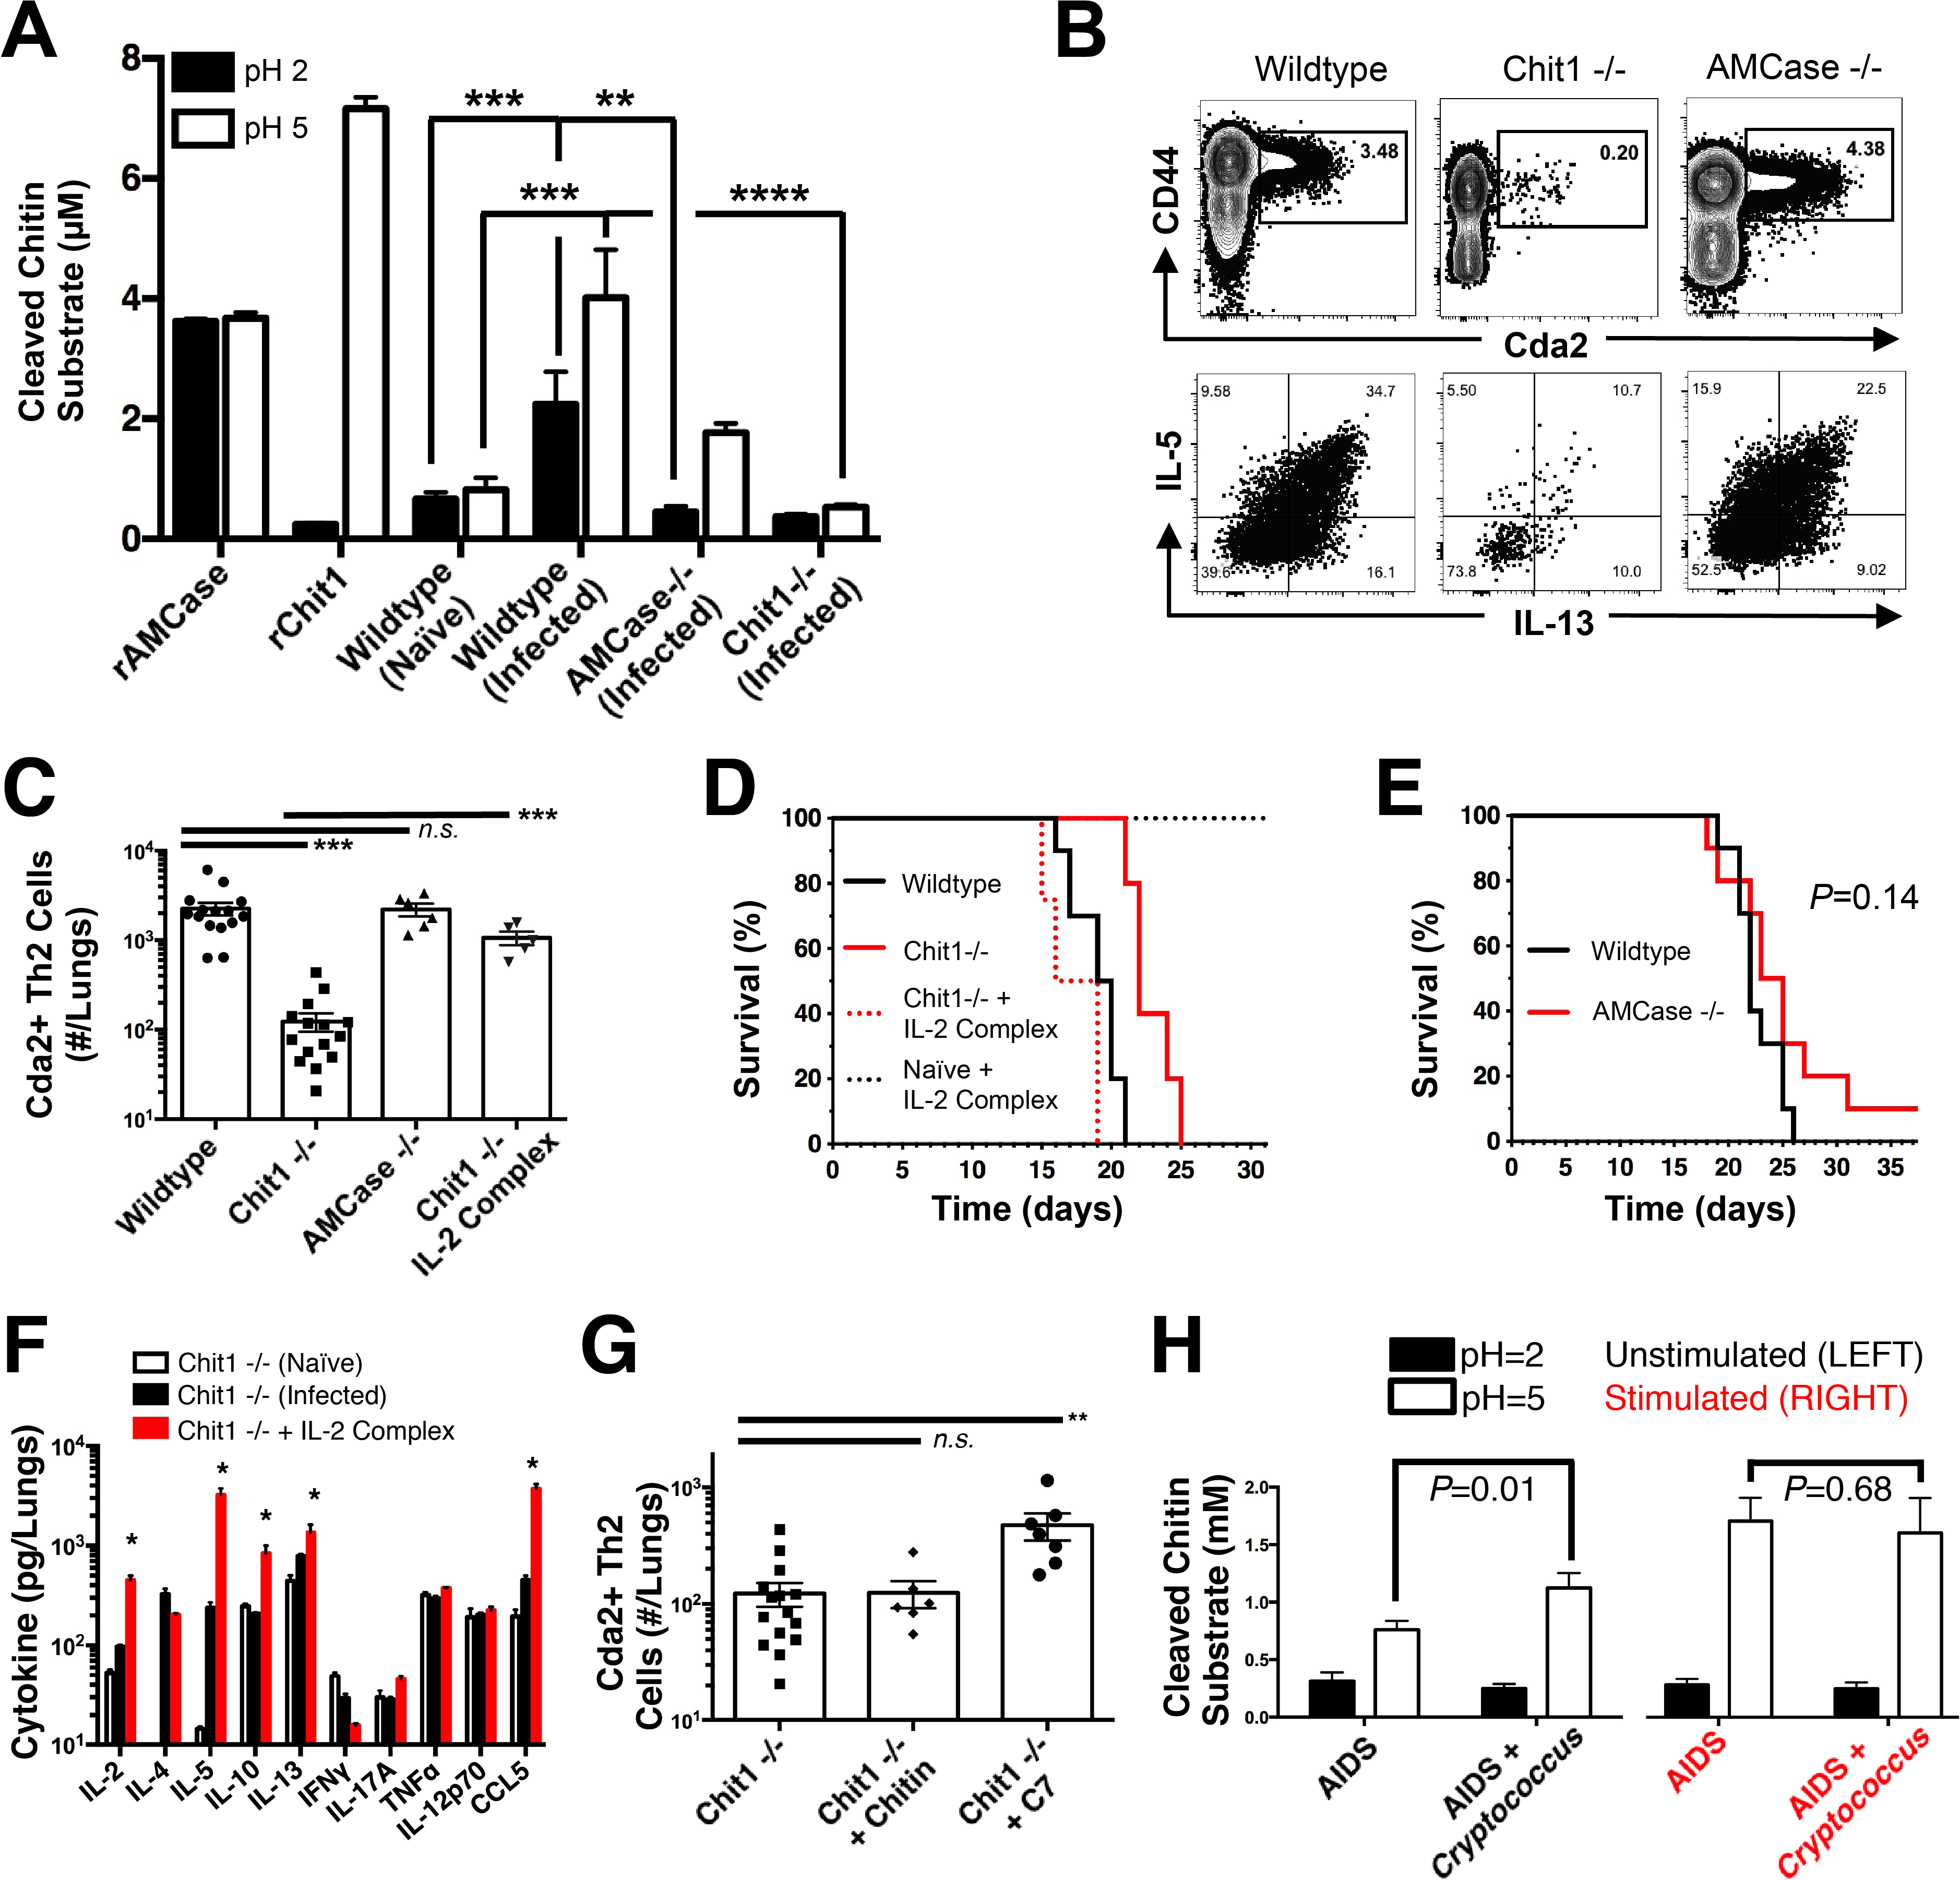 Chitotriosidase Promotes Chitin Recognition and Th2 Cell-mediated Disease.